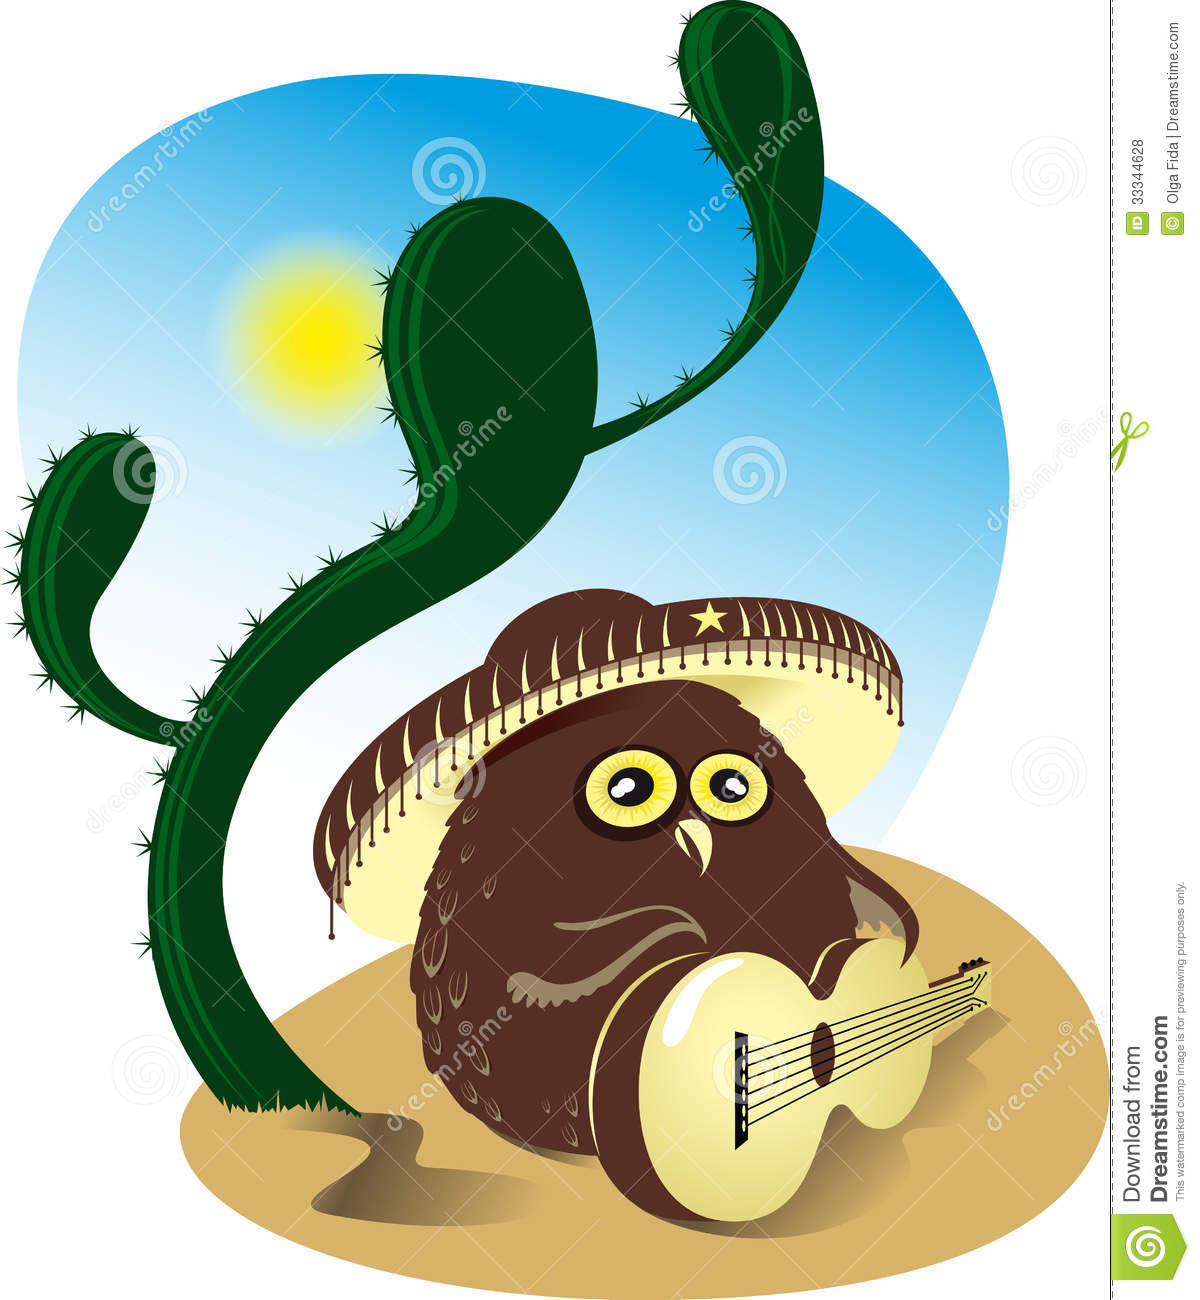 owl playing the guitar - photo #25